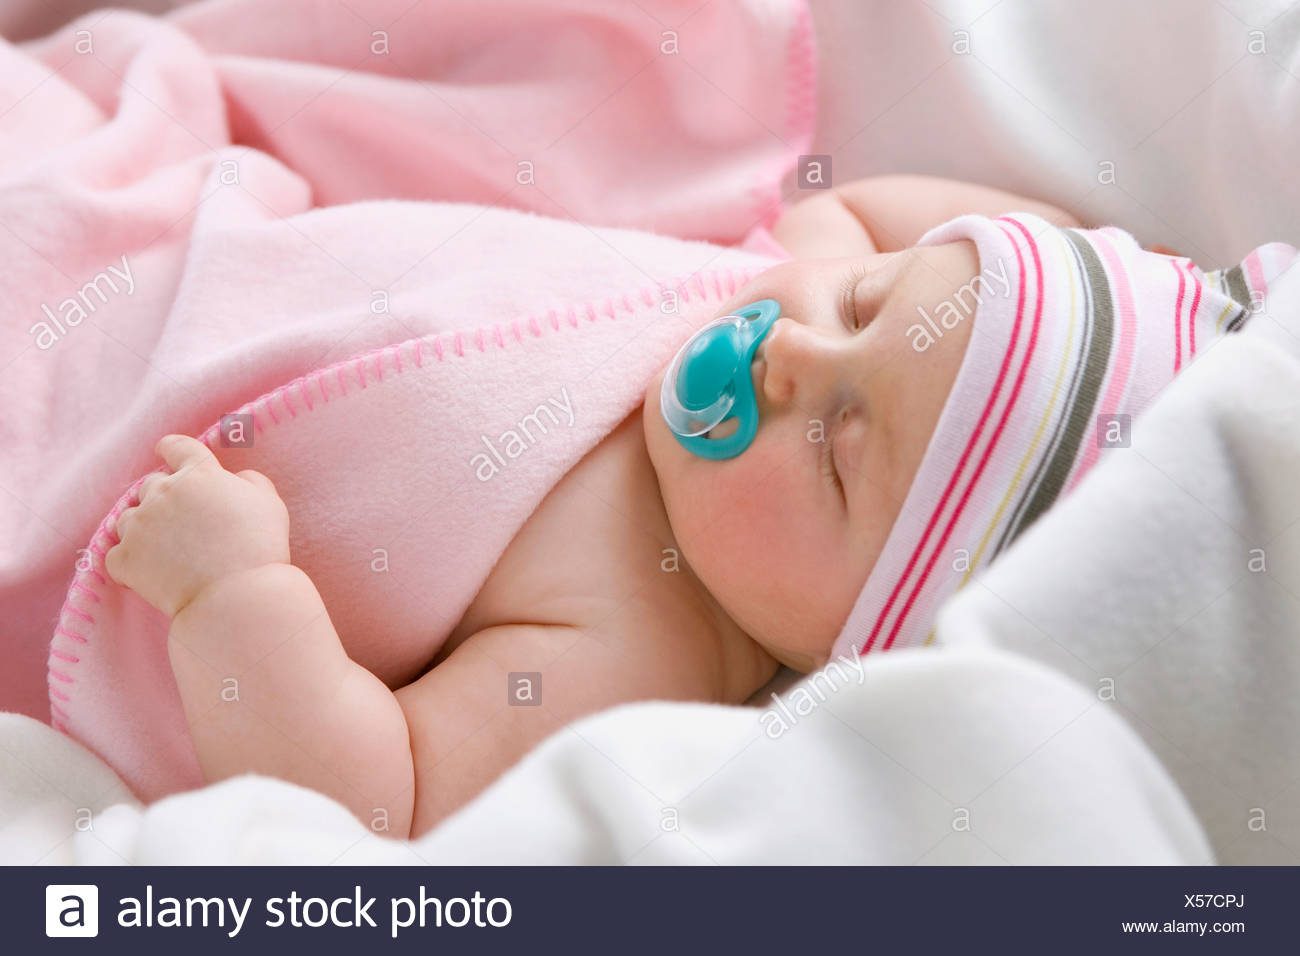 Baby boy (6-9 months) sleeping with pacifier, close-up - Stock Image